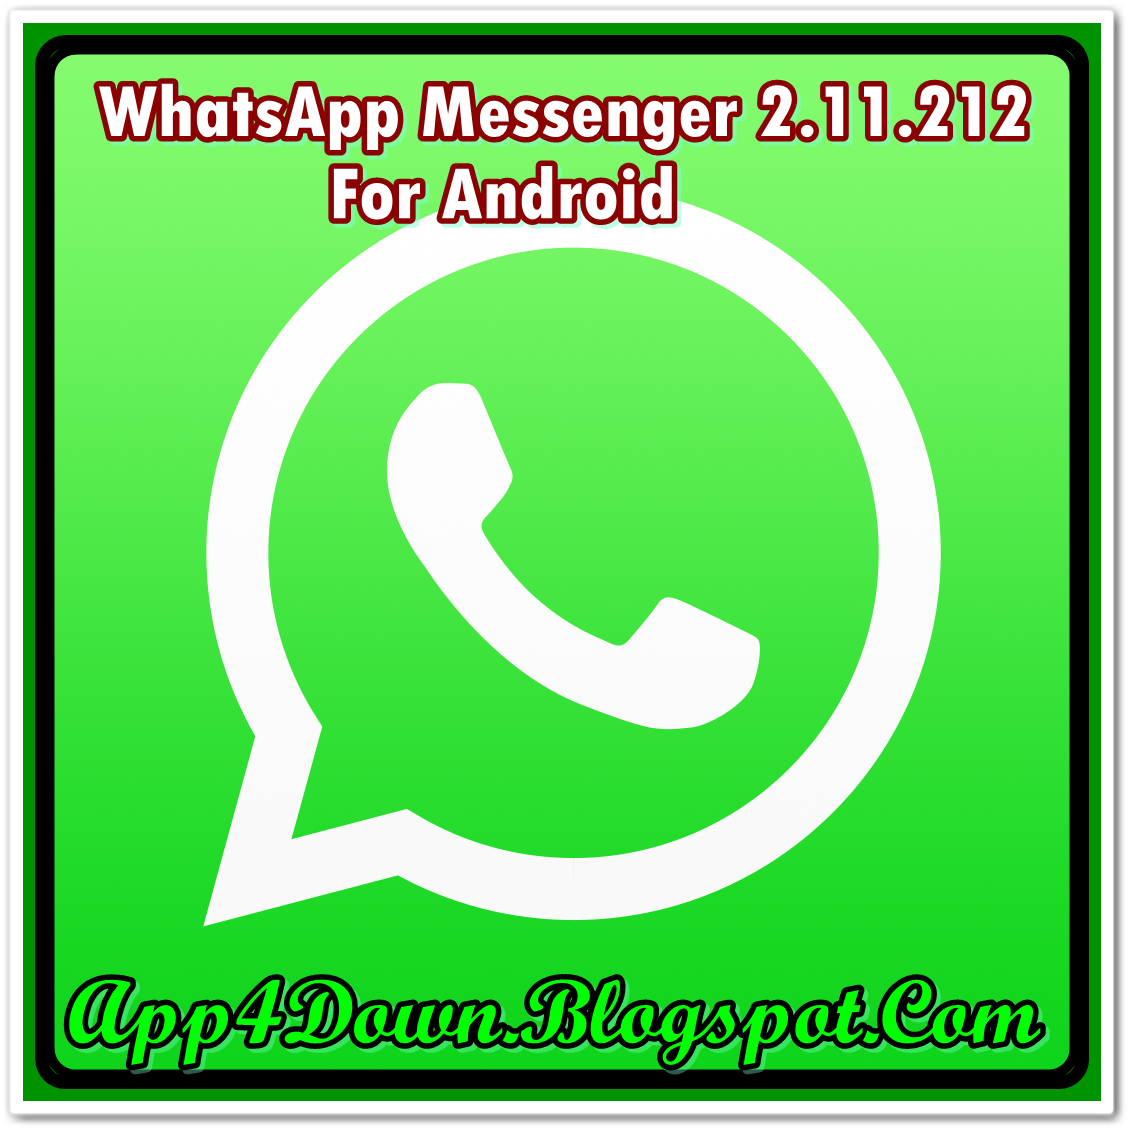 whatsapp messenger download for android